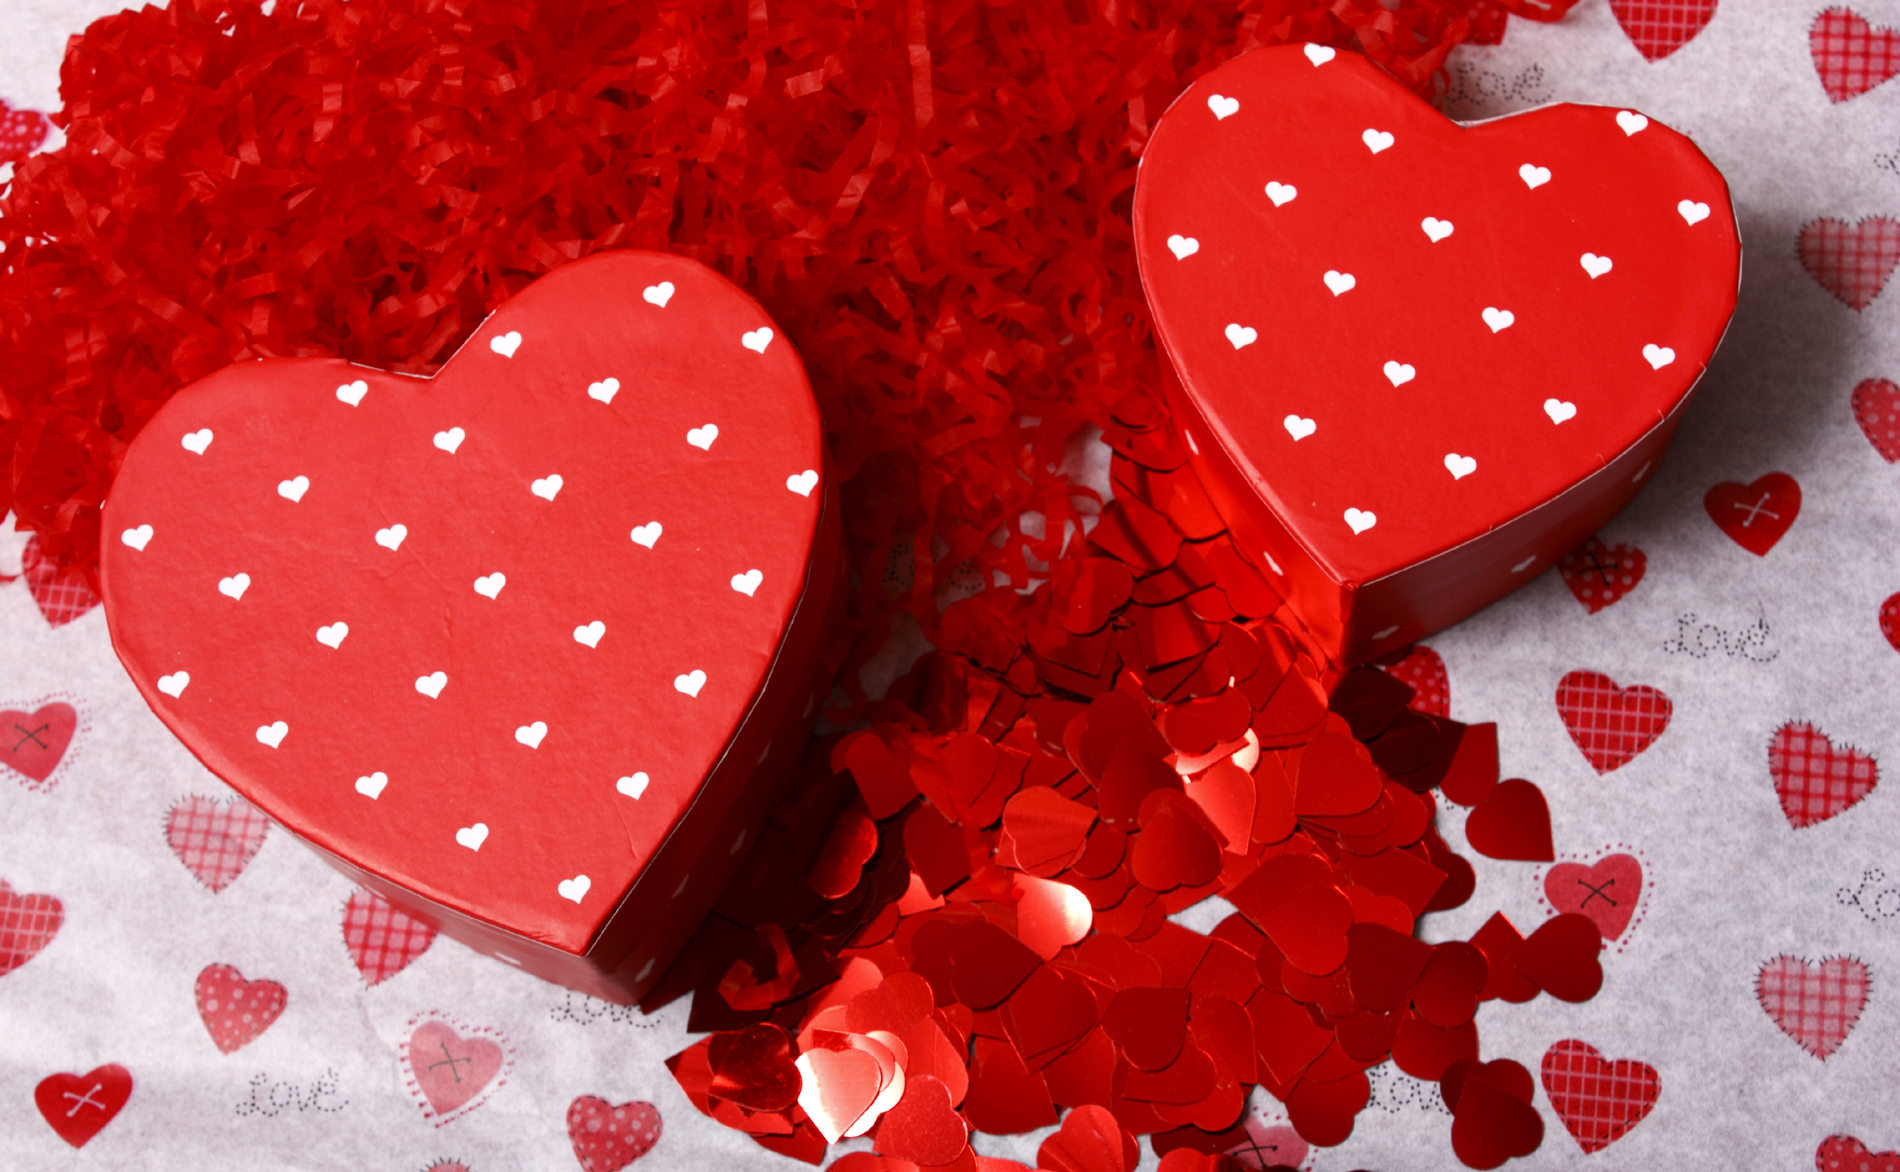 Torn and red heart-shaped gift box 52694